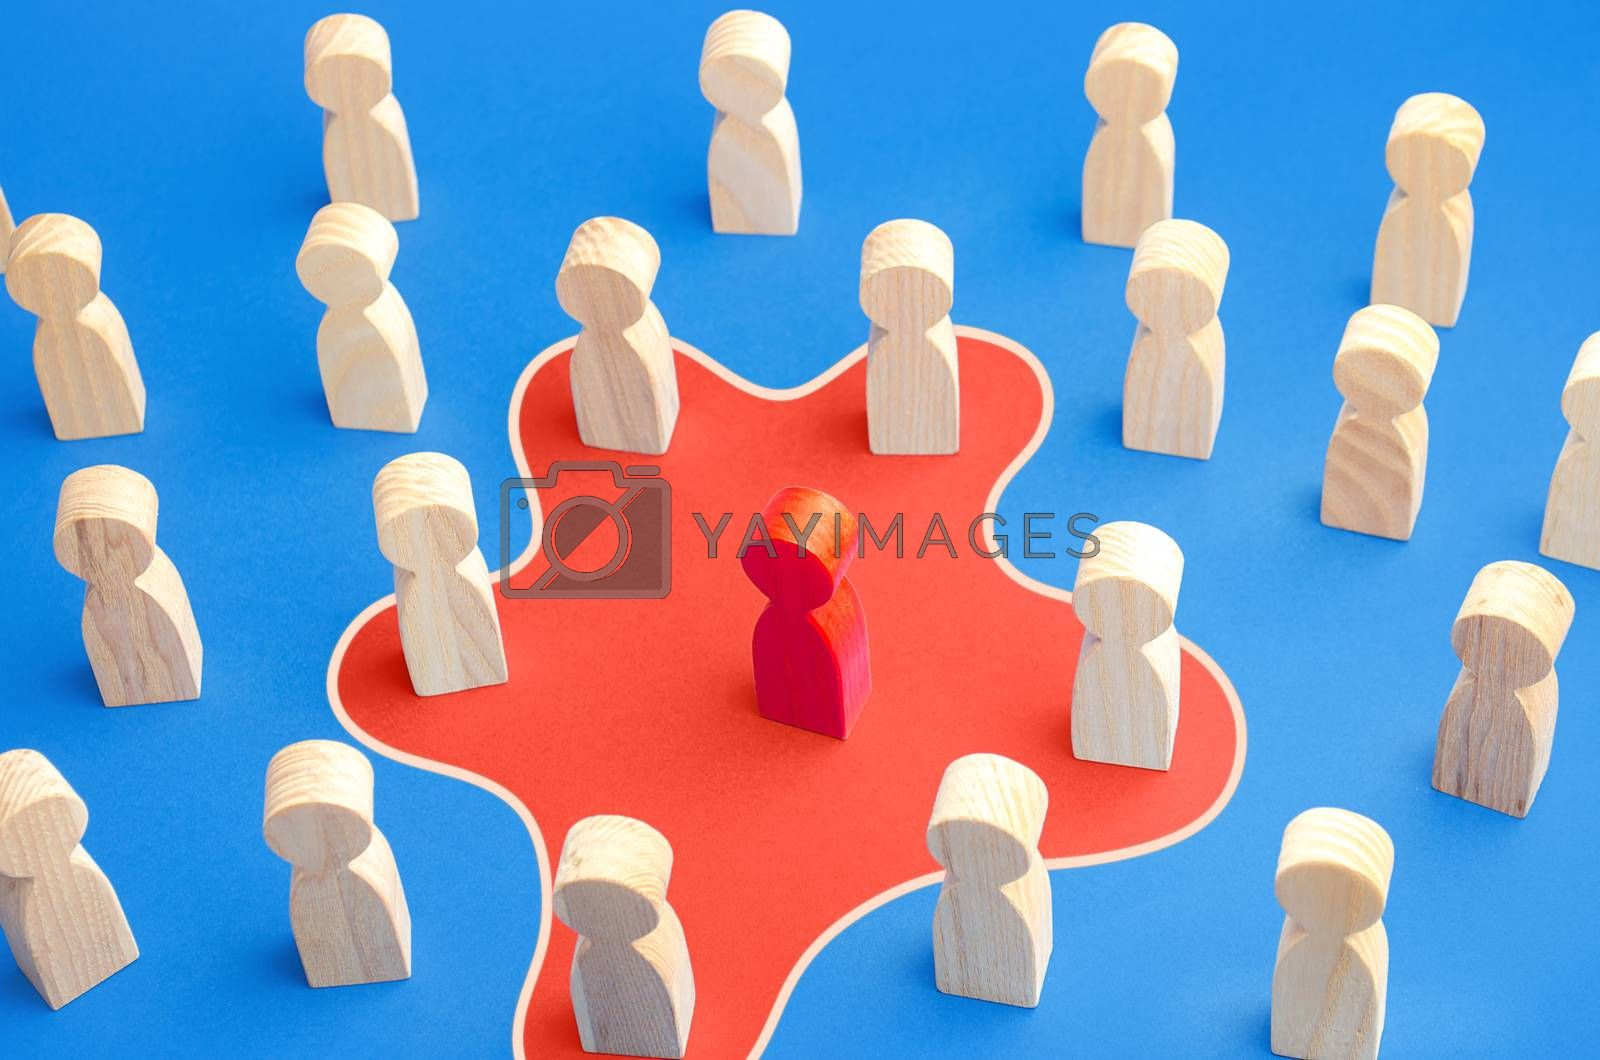 Red man spreads his influence over people around him. Unite people on a new idea. Collaboration, cooperation. Recruiting followers. Influencer manipulator, intriguer. Toxic worker